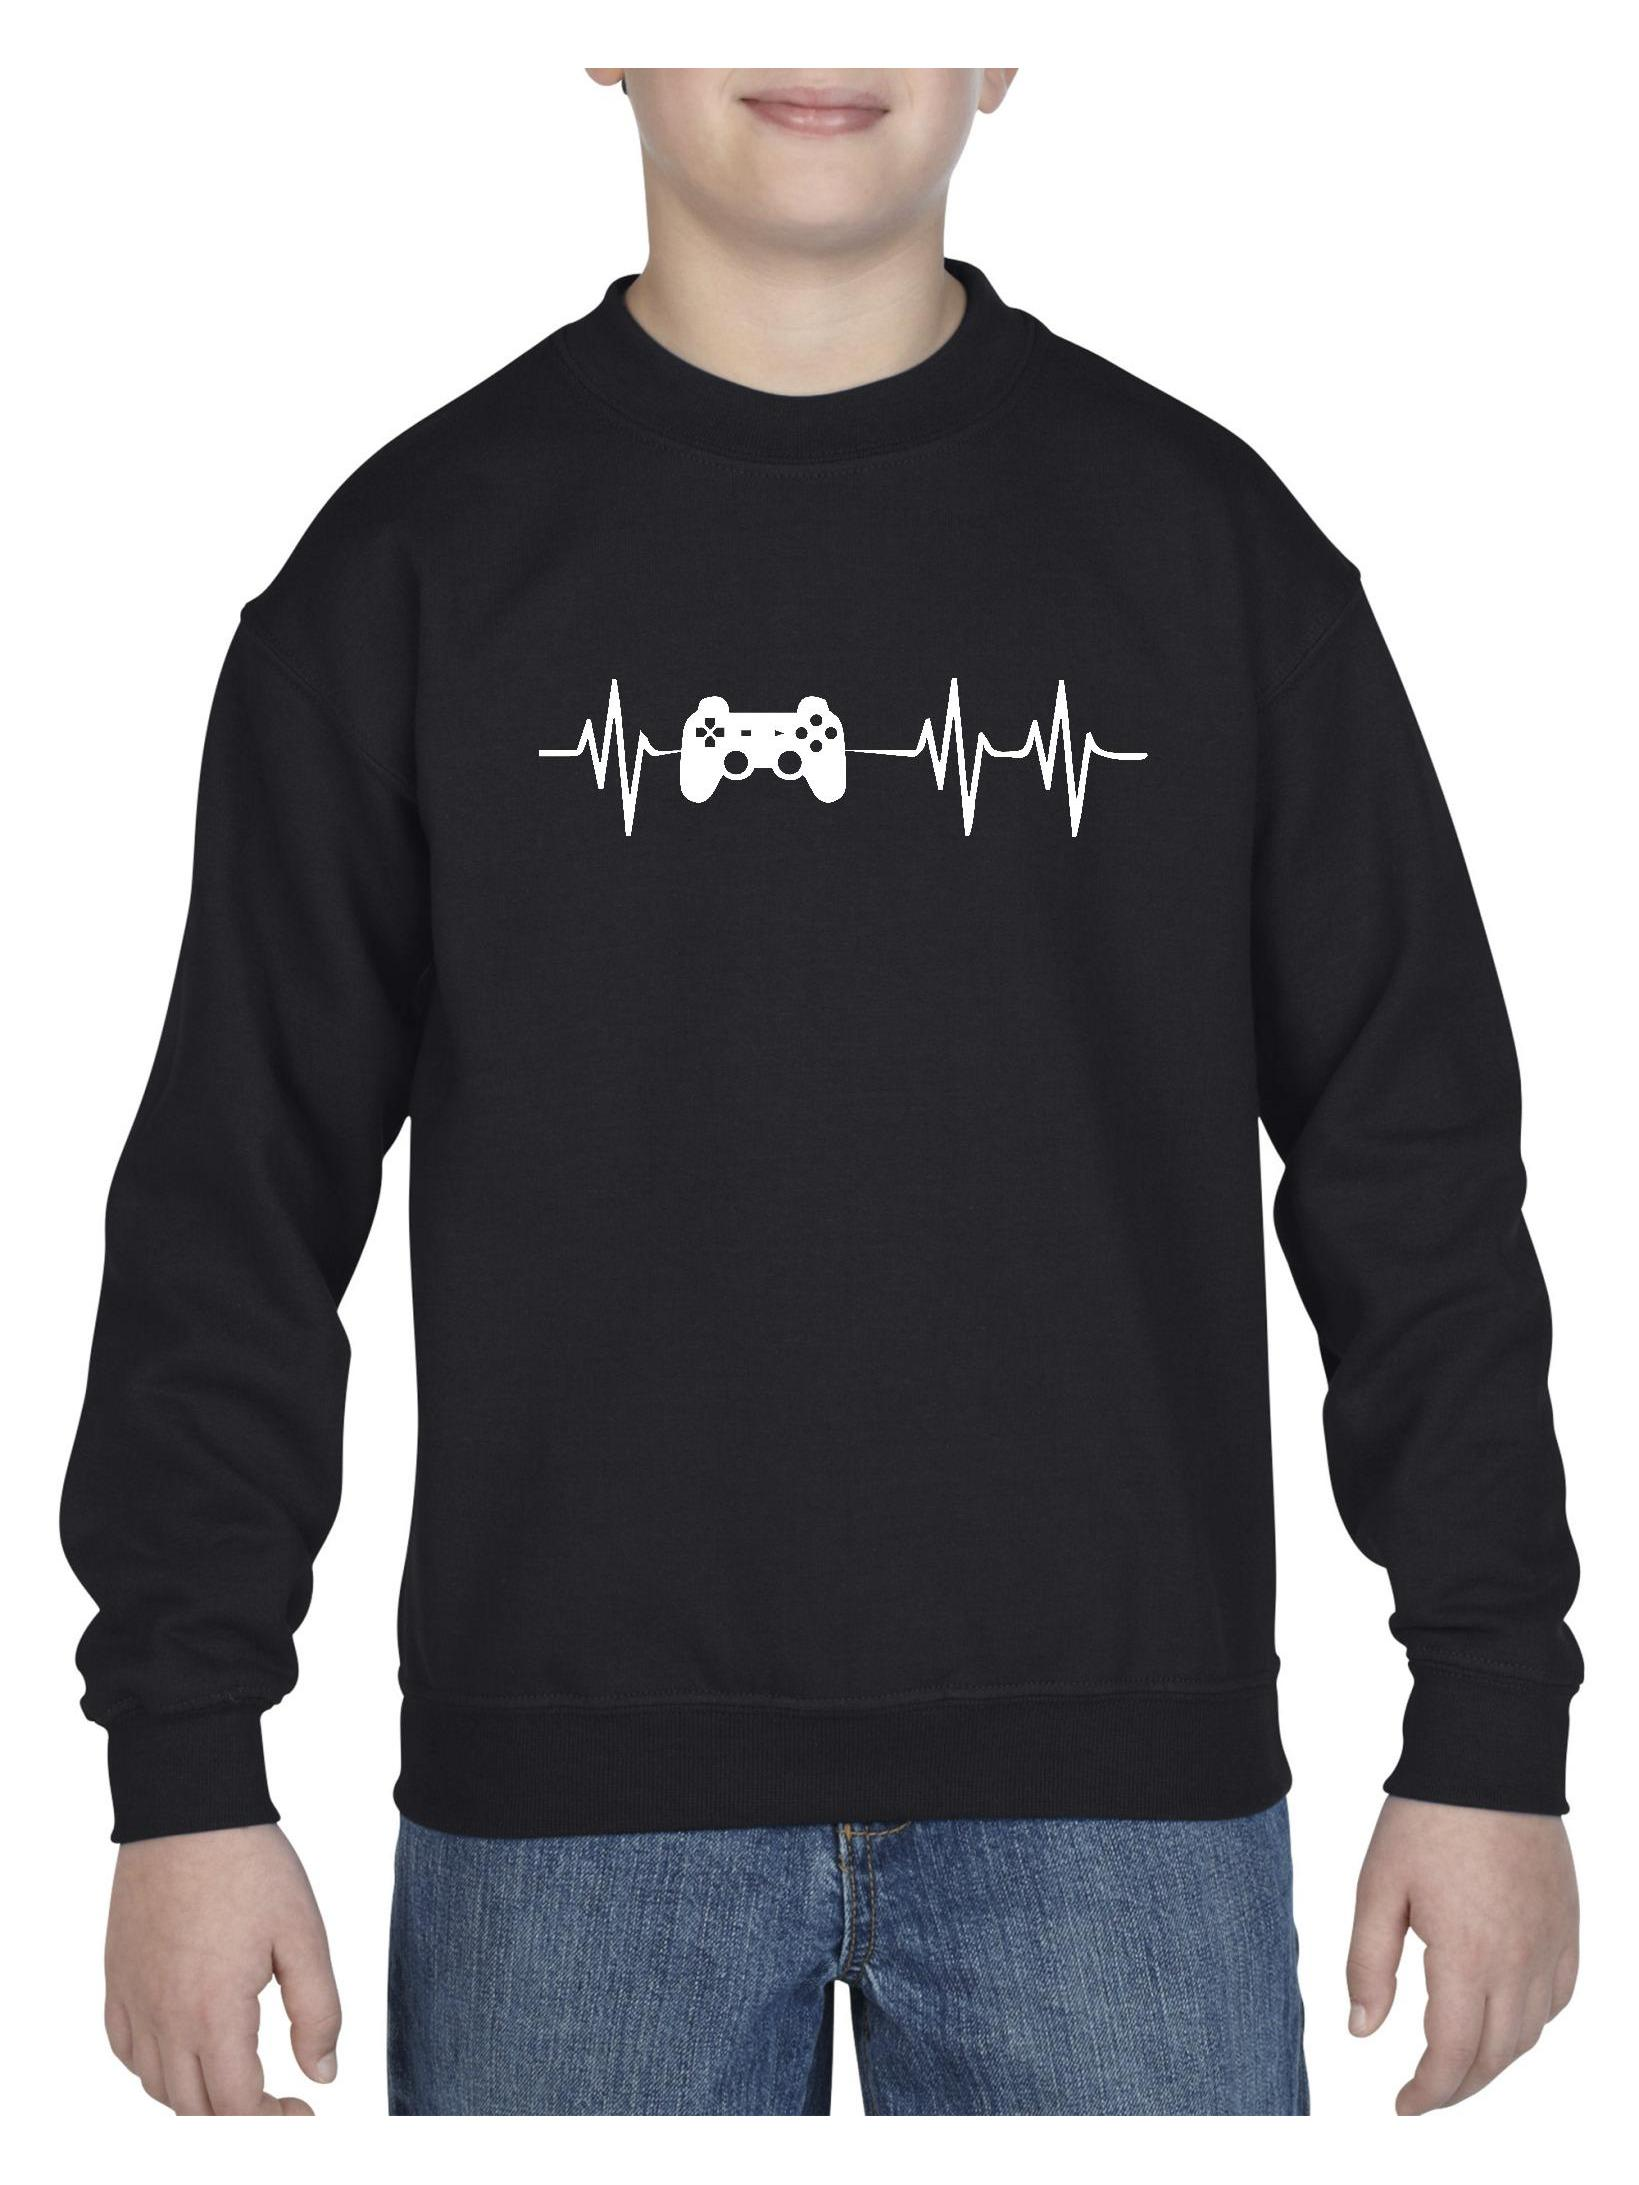 Gamer Unisex Youth Crewneck Sweatshirt